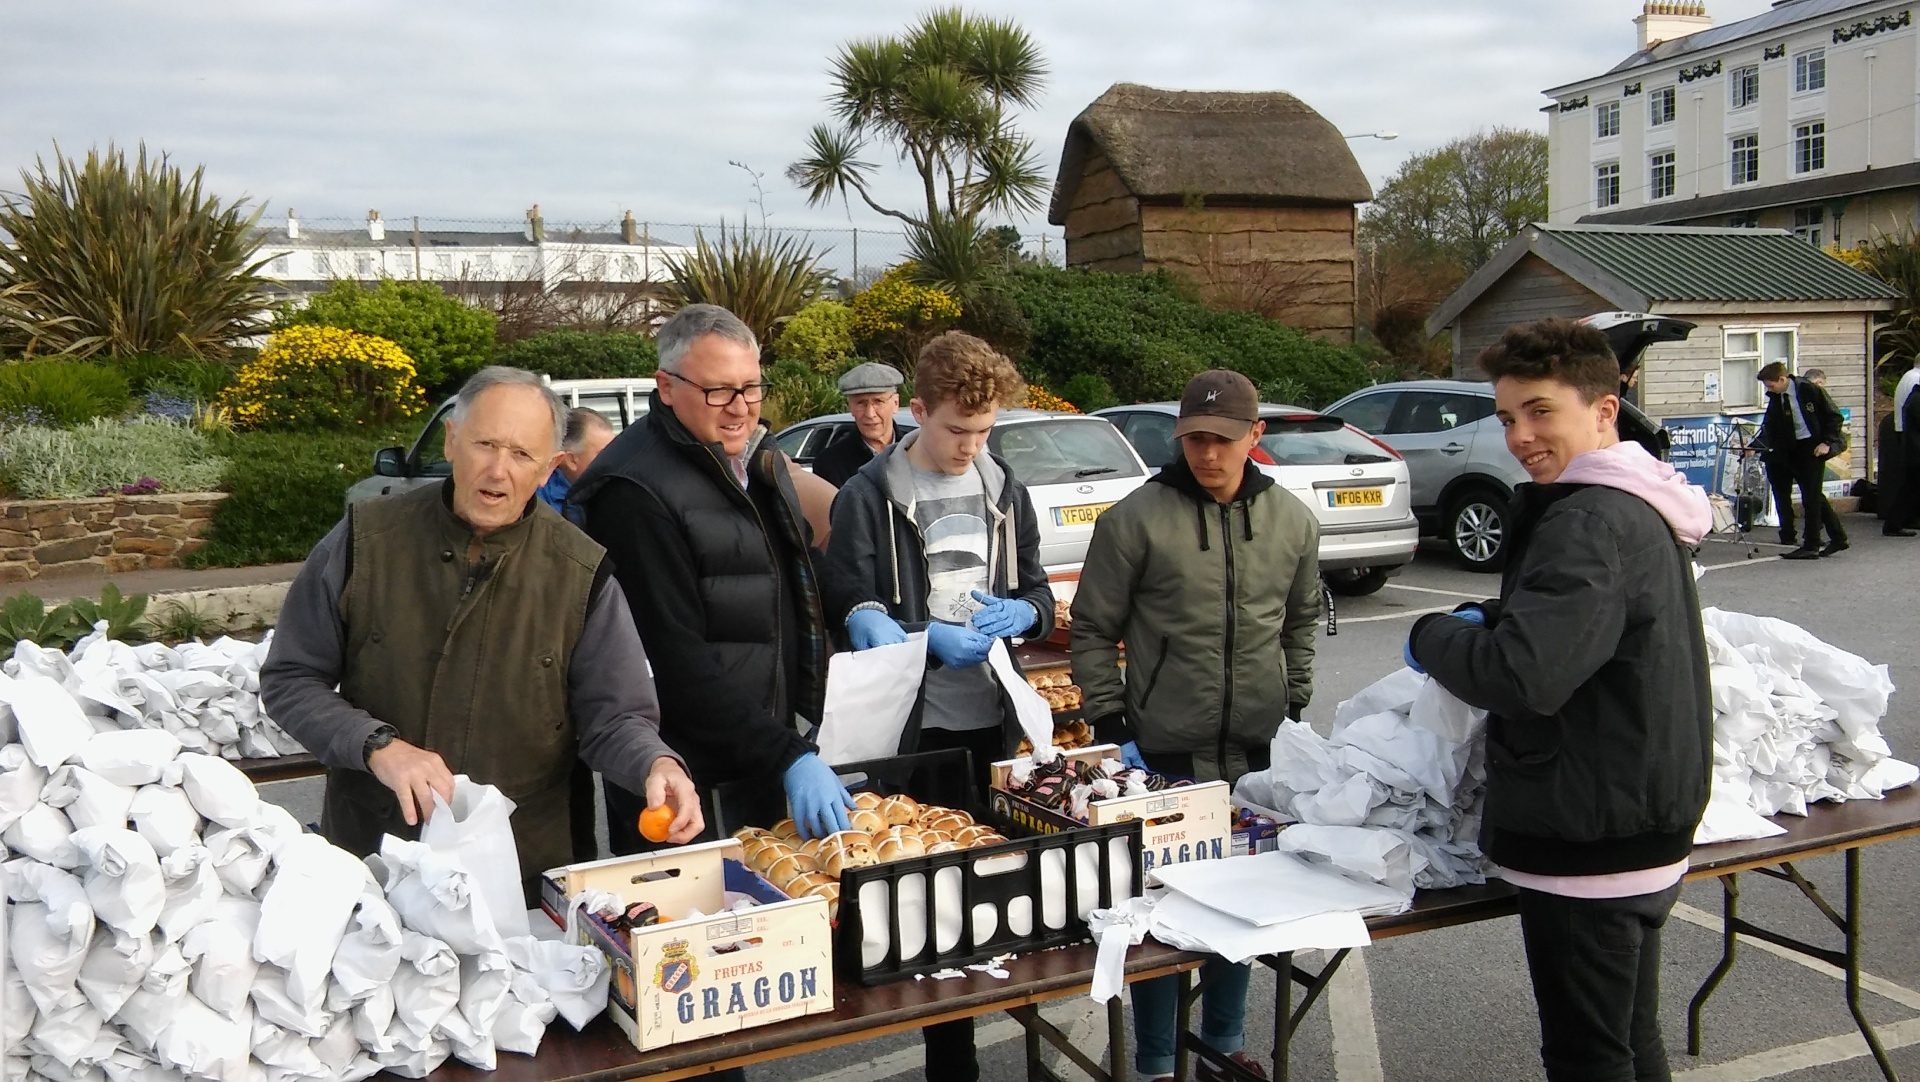 hot cross buns sidmouth packing bags